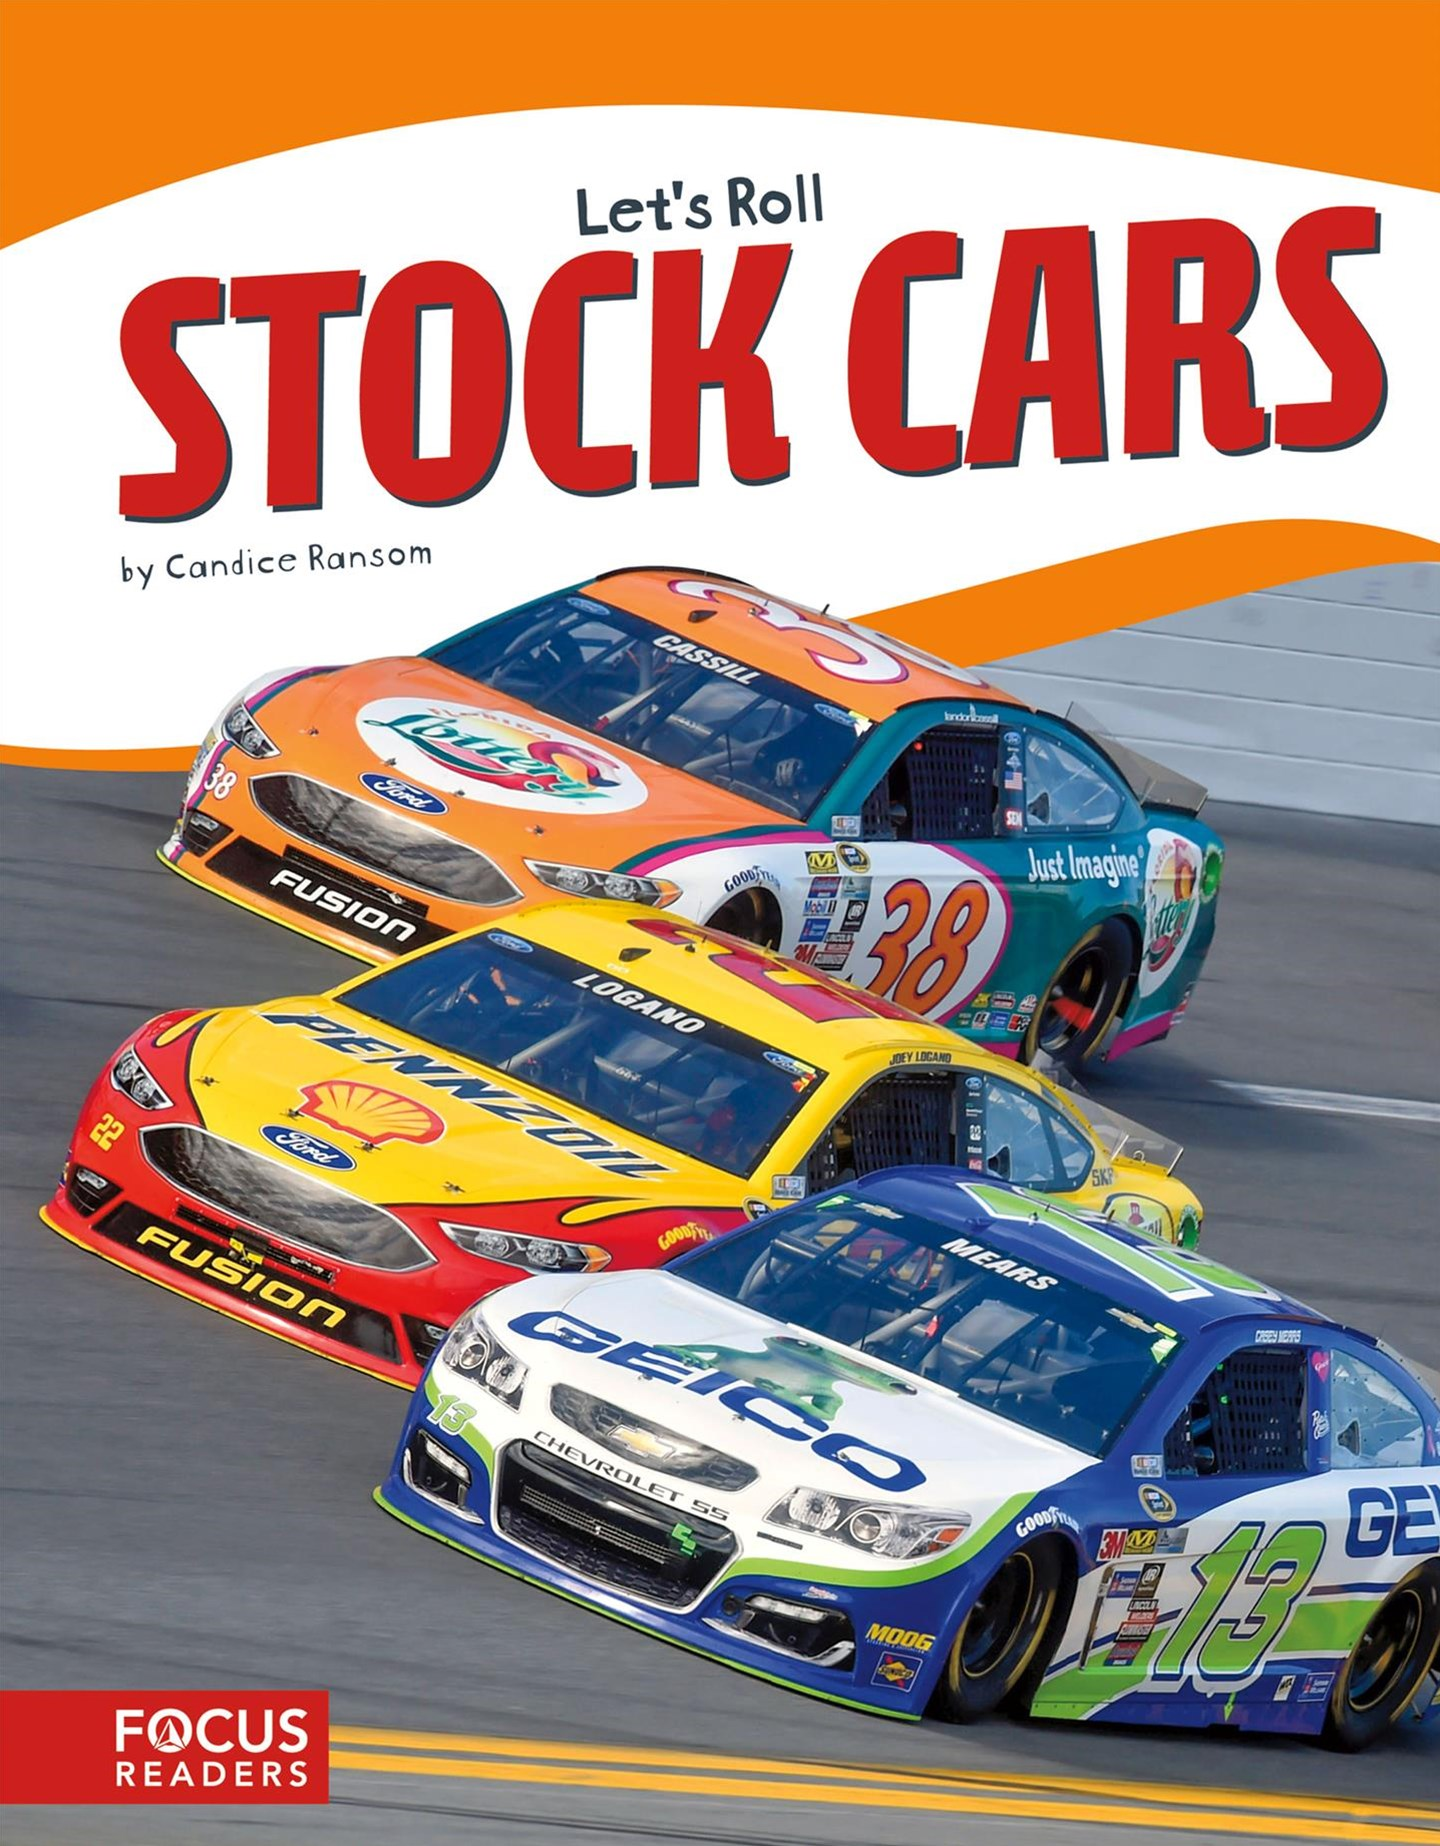 Stock Cars -  Let's Roll